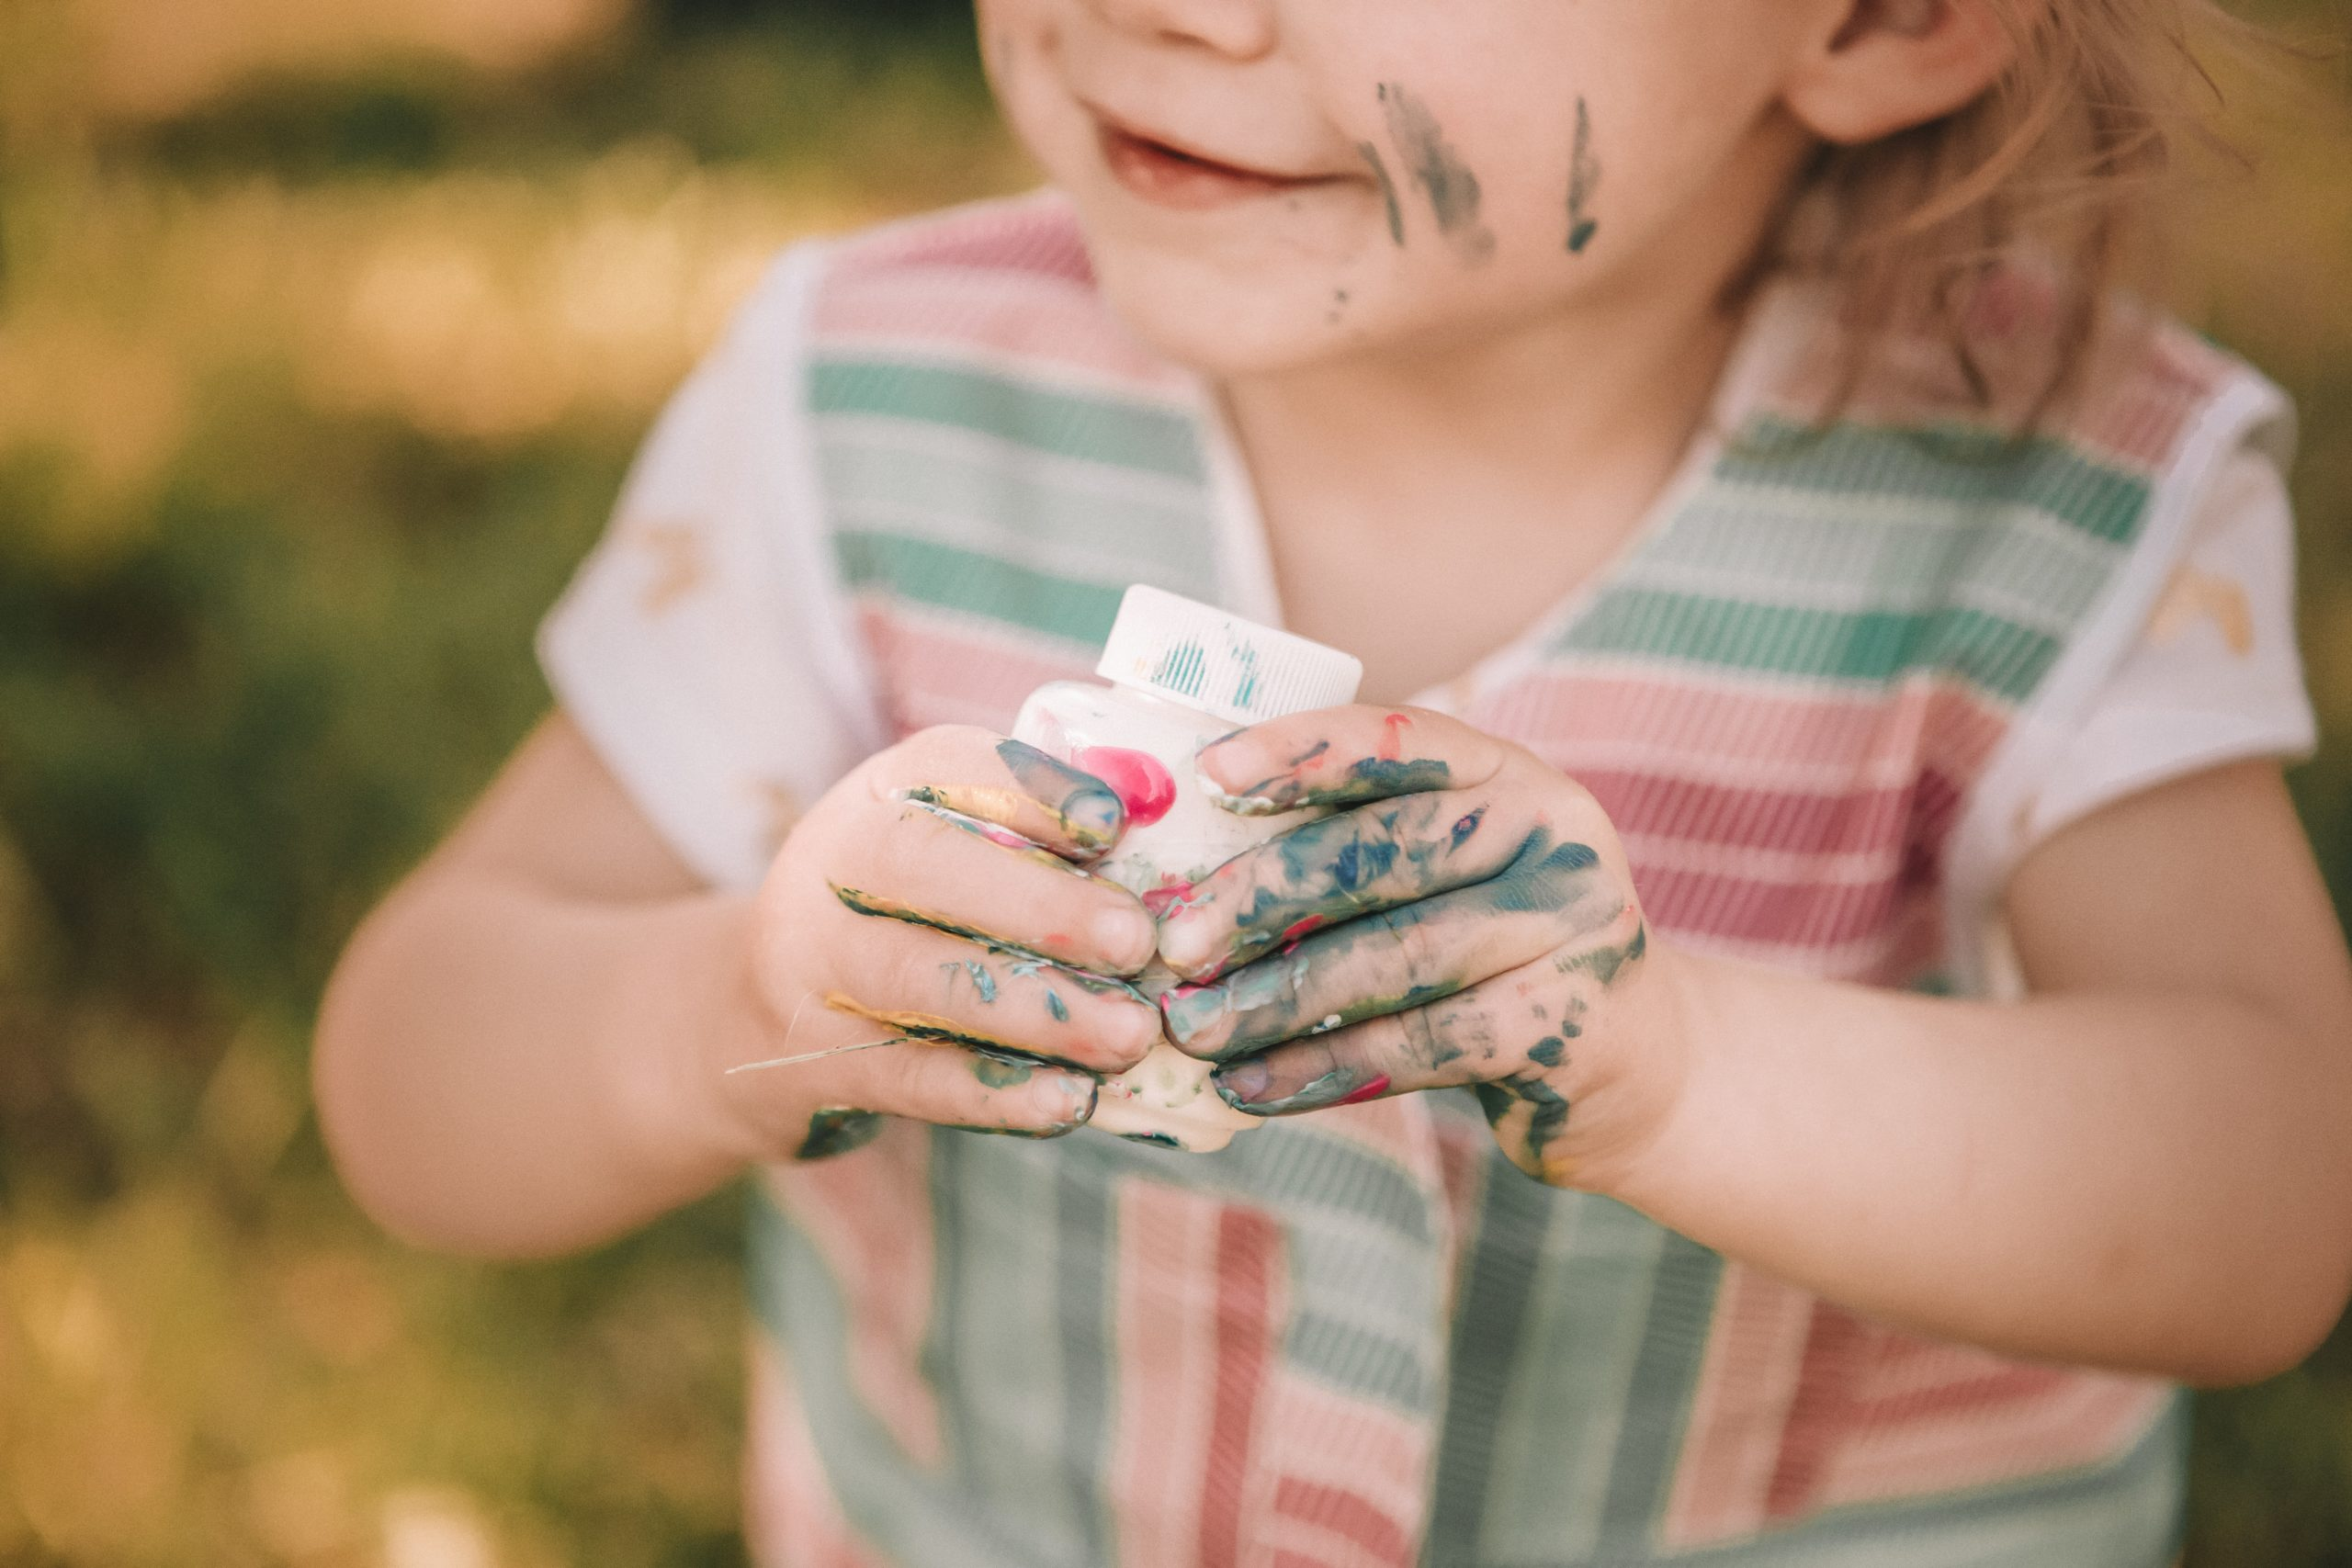 Toddler with paint all over hands